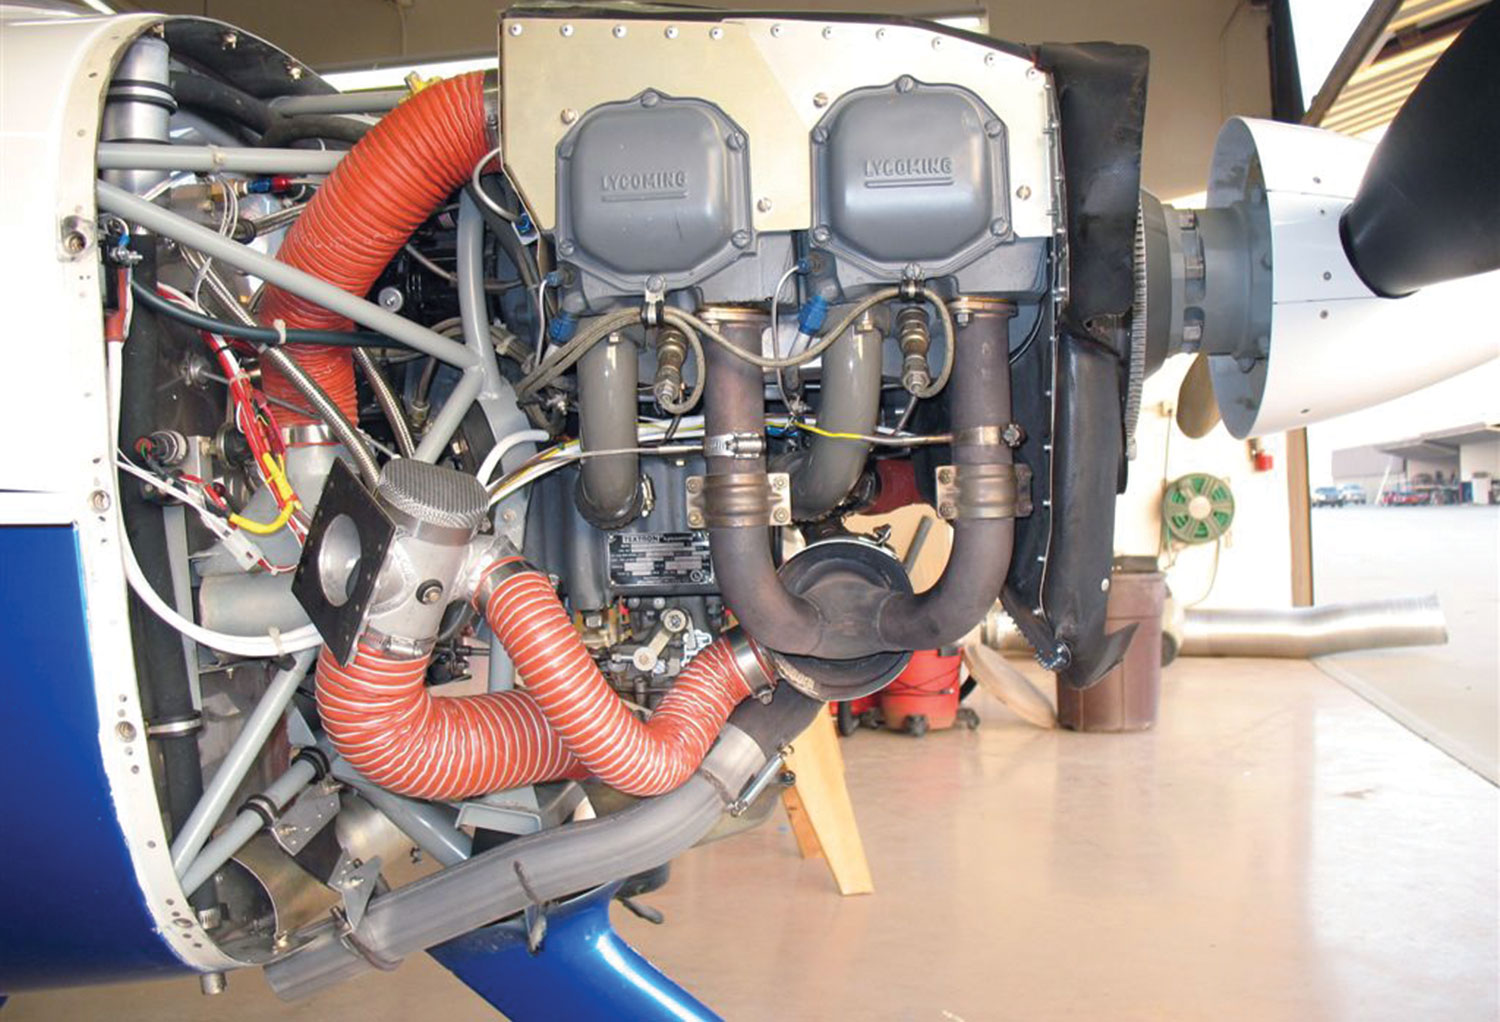 The original Sportsman exhaust system is similar to that on a Cessna—a large can-type muffler tucked underneath the engine and a single exhaust pipe leading out of the cowl.